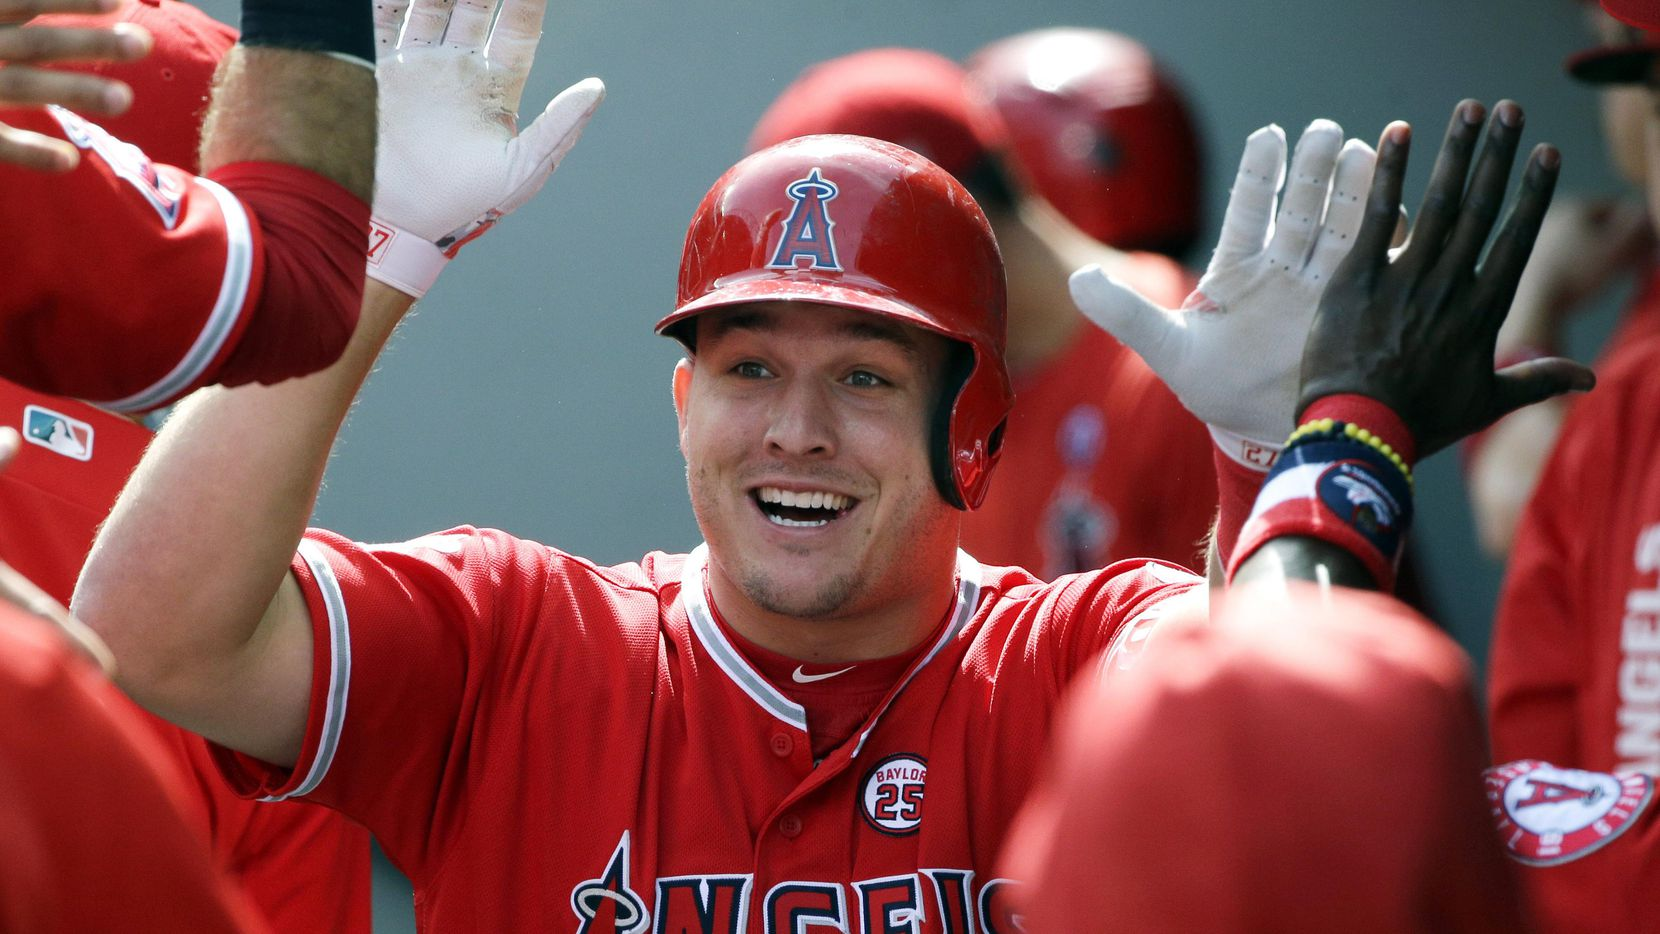 Mike Trout negocia un contrato por 12 años con los Angels de Los Angeles.(AP)